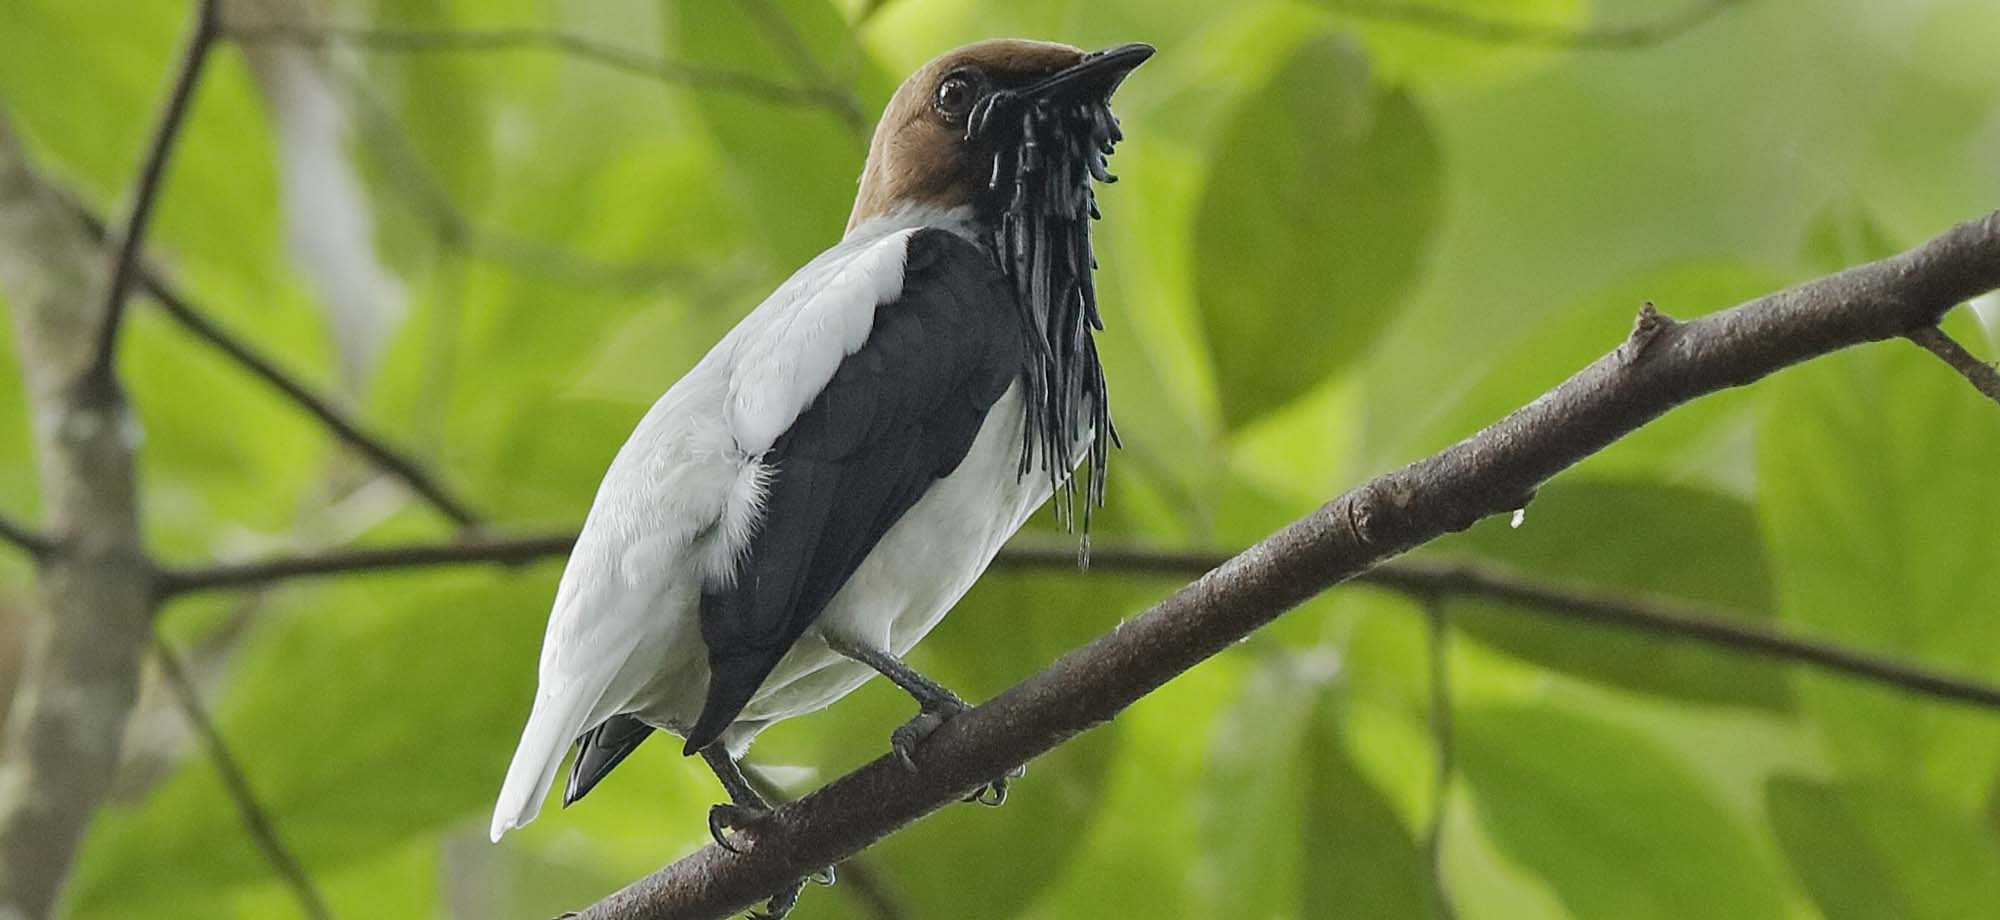 Bearded Bellbird Field Guides Birding Tours Trinidad